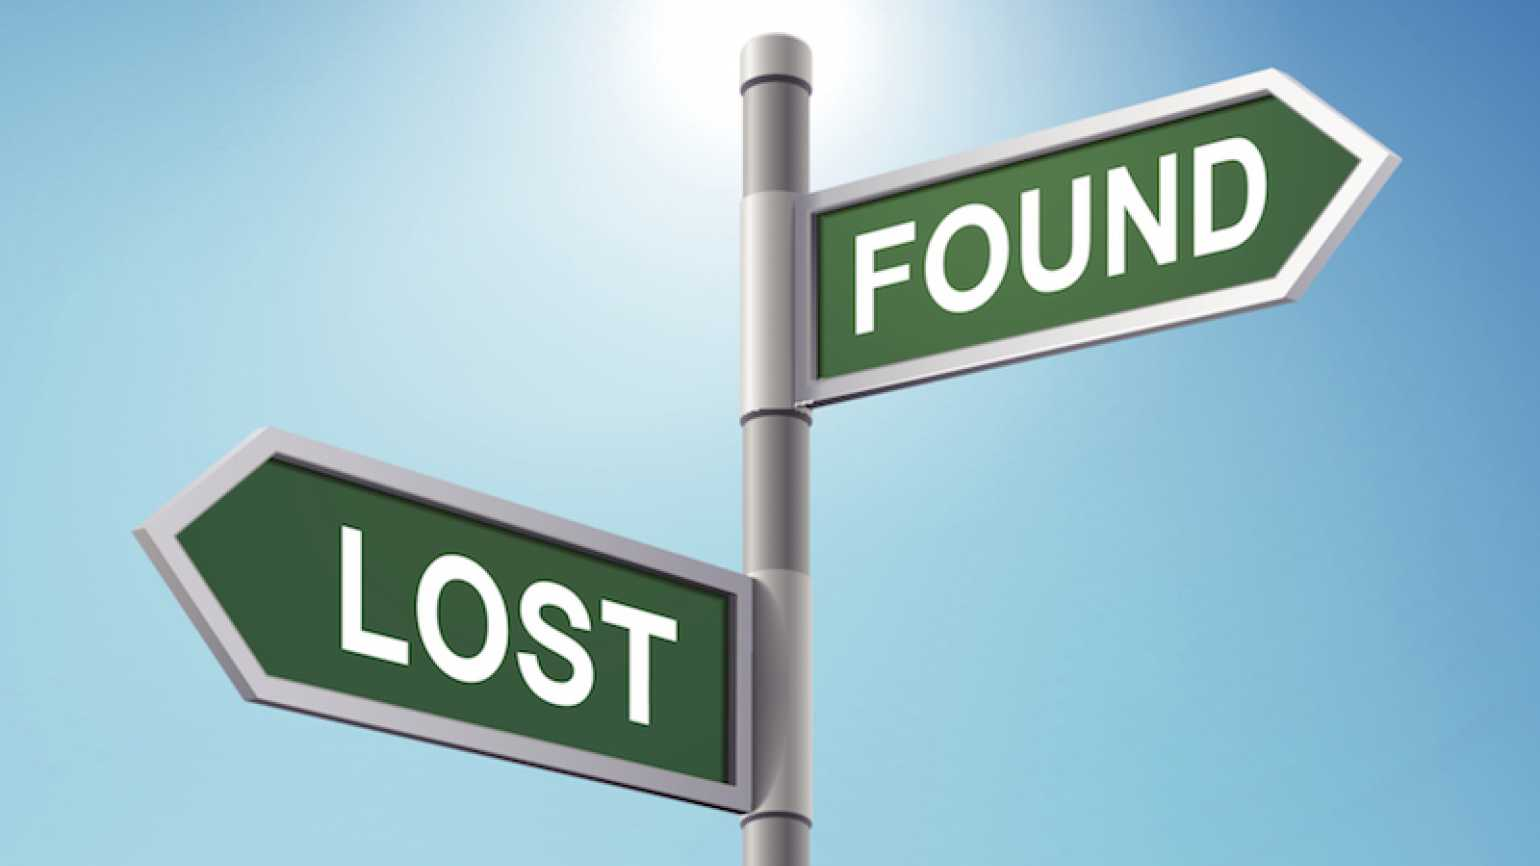 Lost and found. Photo by totallyPic.com, Thinkstock.